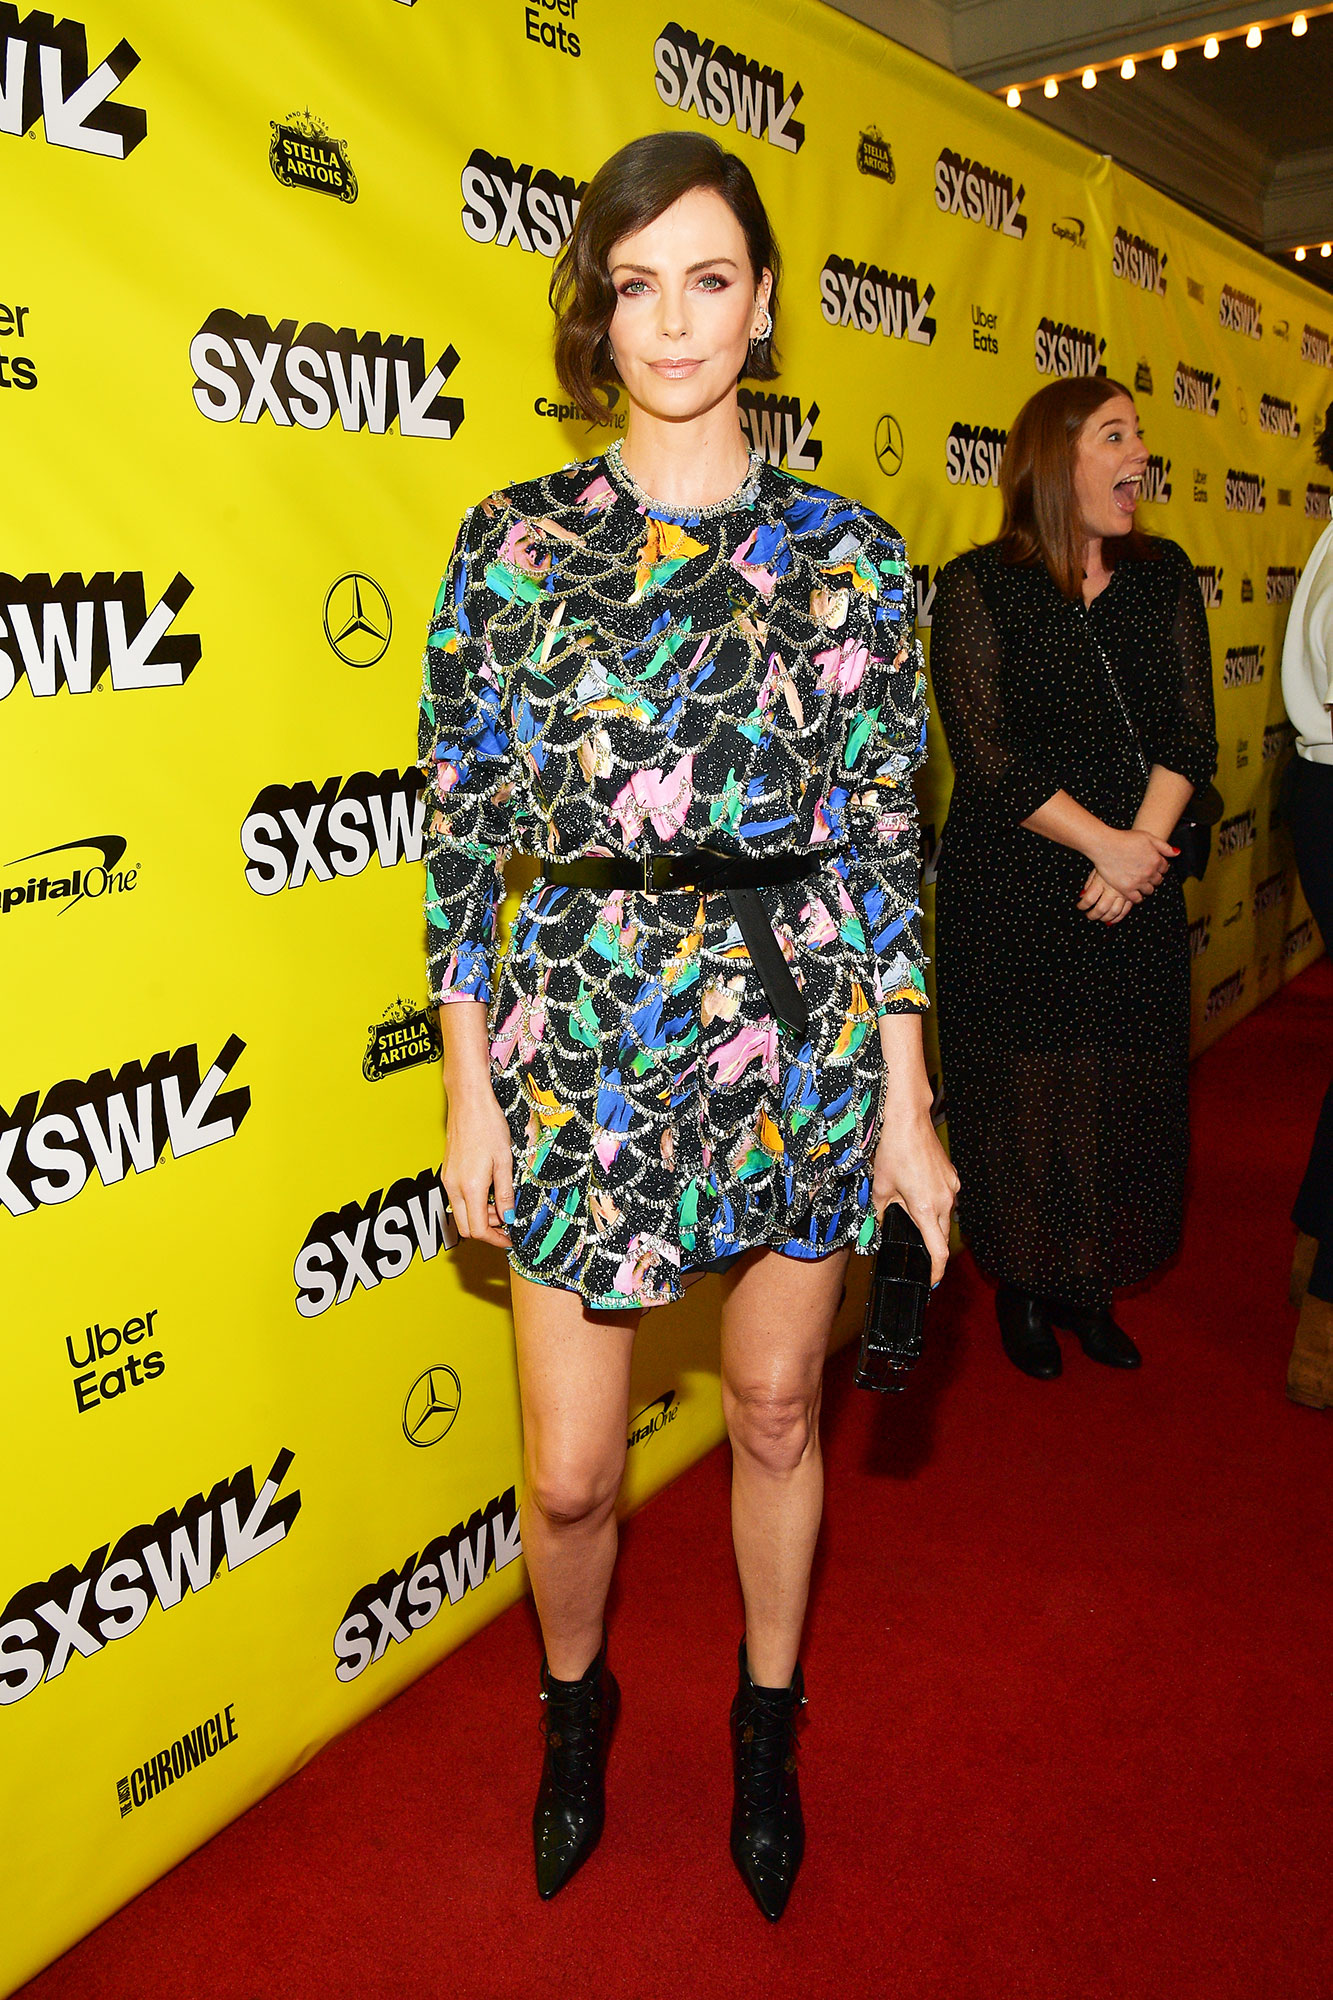 Charlize Theron SXSW Is Giving Us Chic Outfit Inspo for Spring - The newly brunette beauty kept things short and sweet in a printed Louis Vuitton mini at the Long Shot screening on Saturday, March 9.